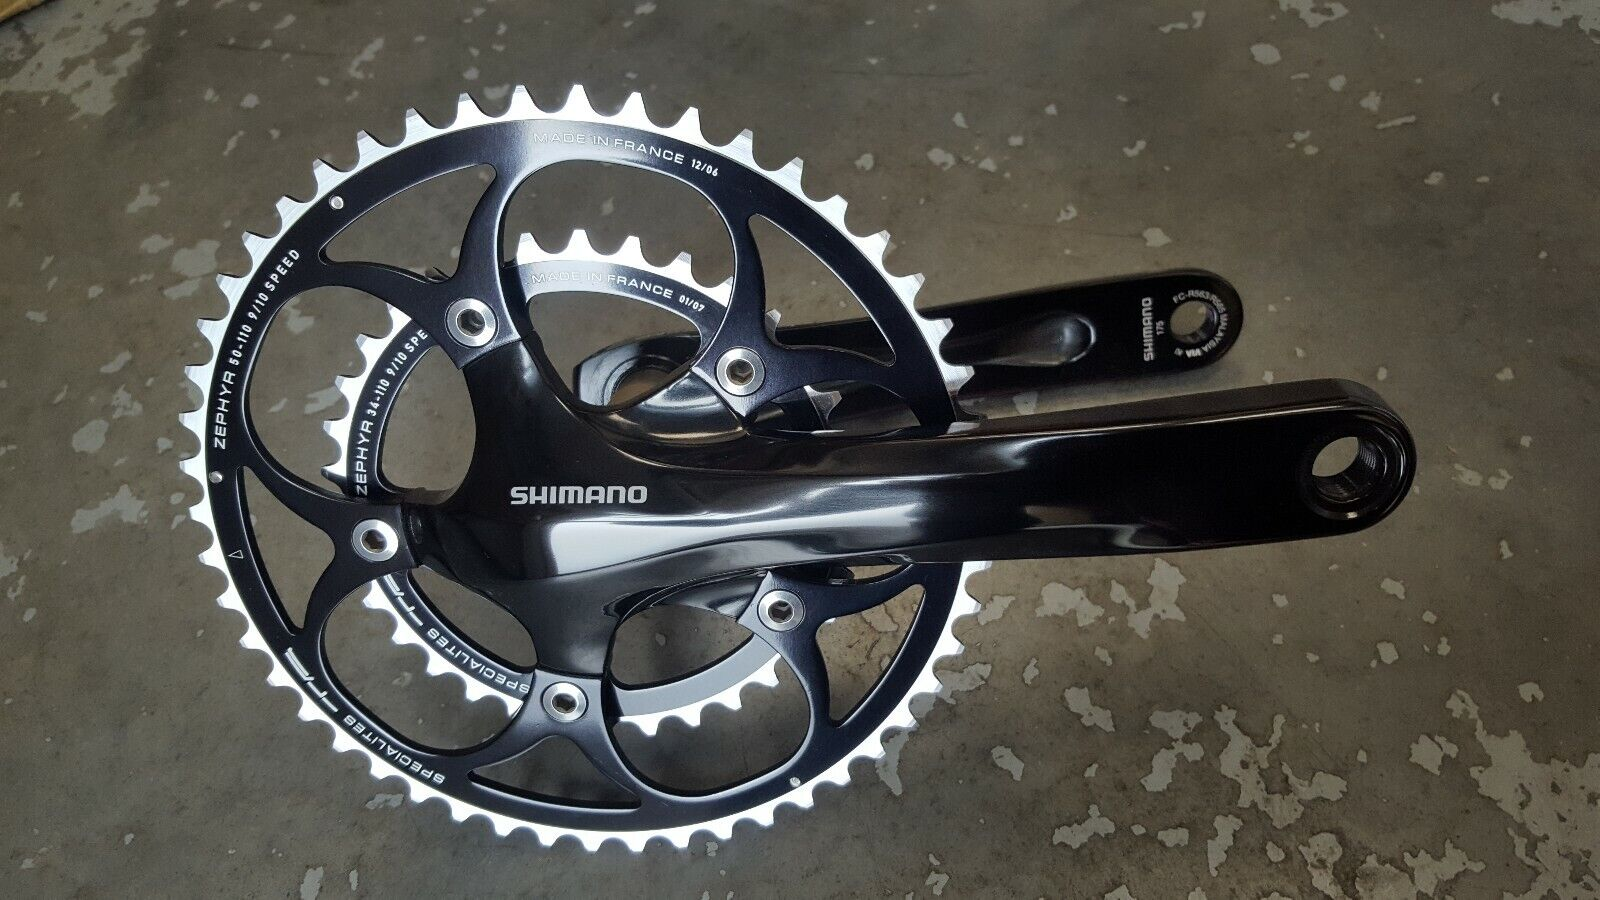 Shimano R565 Chainset (NEW) 9 10s Compact 172.5mm + TA Zephyr Chain Rings (NEW)